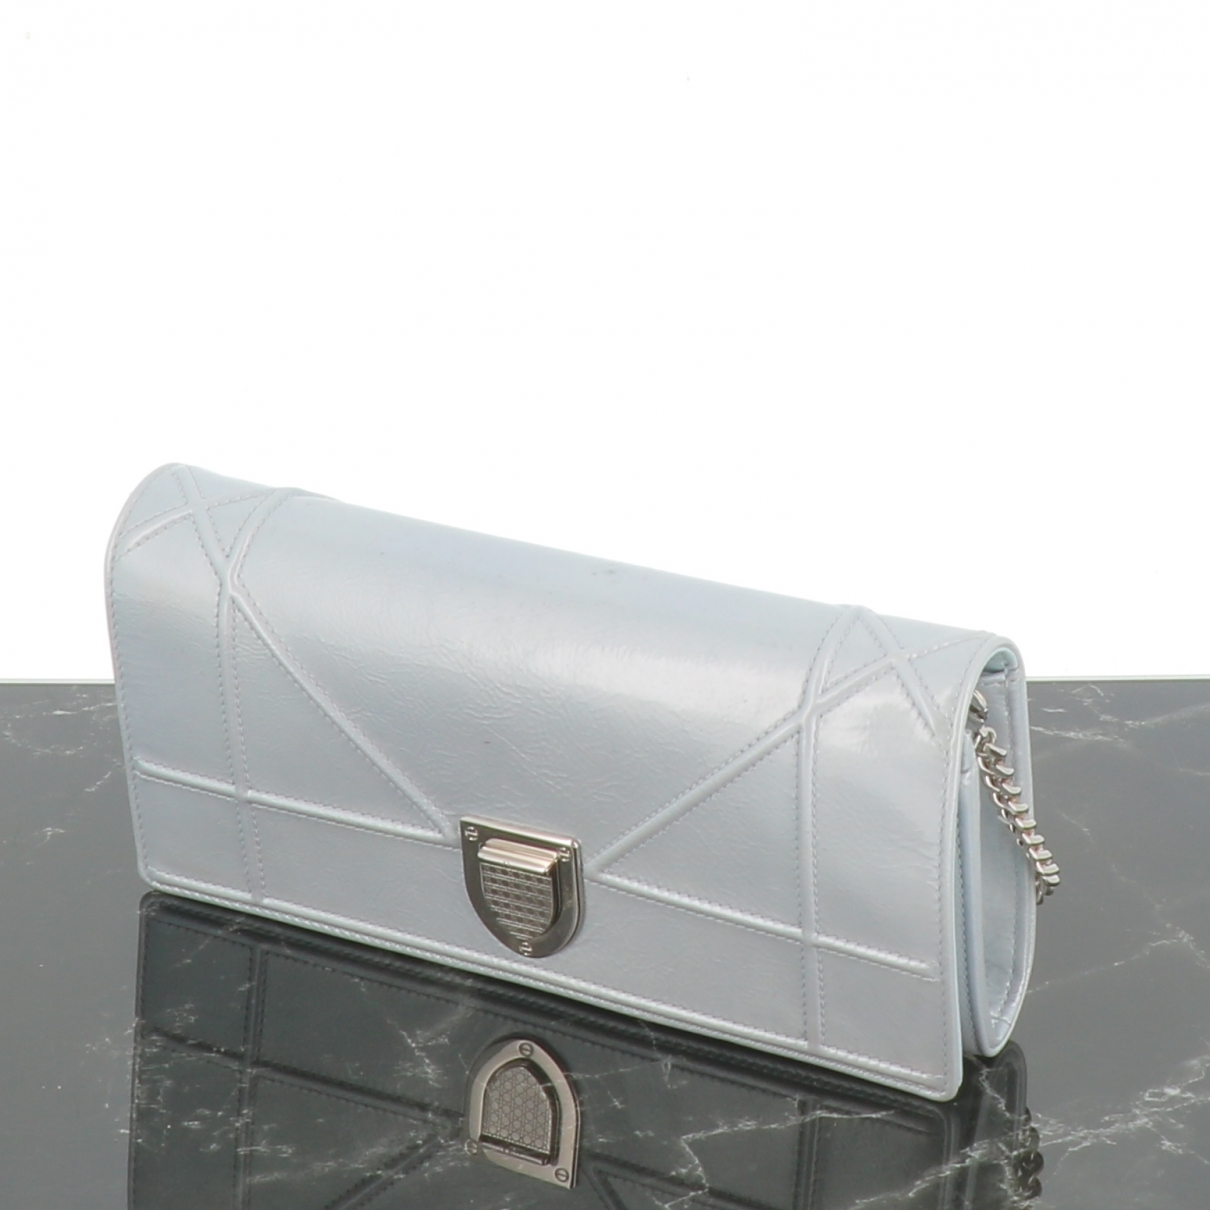 Dior Diorama Grey Patent leather Clutch bag for Women \N